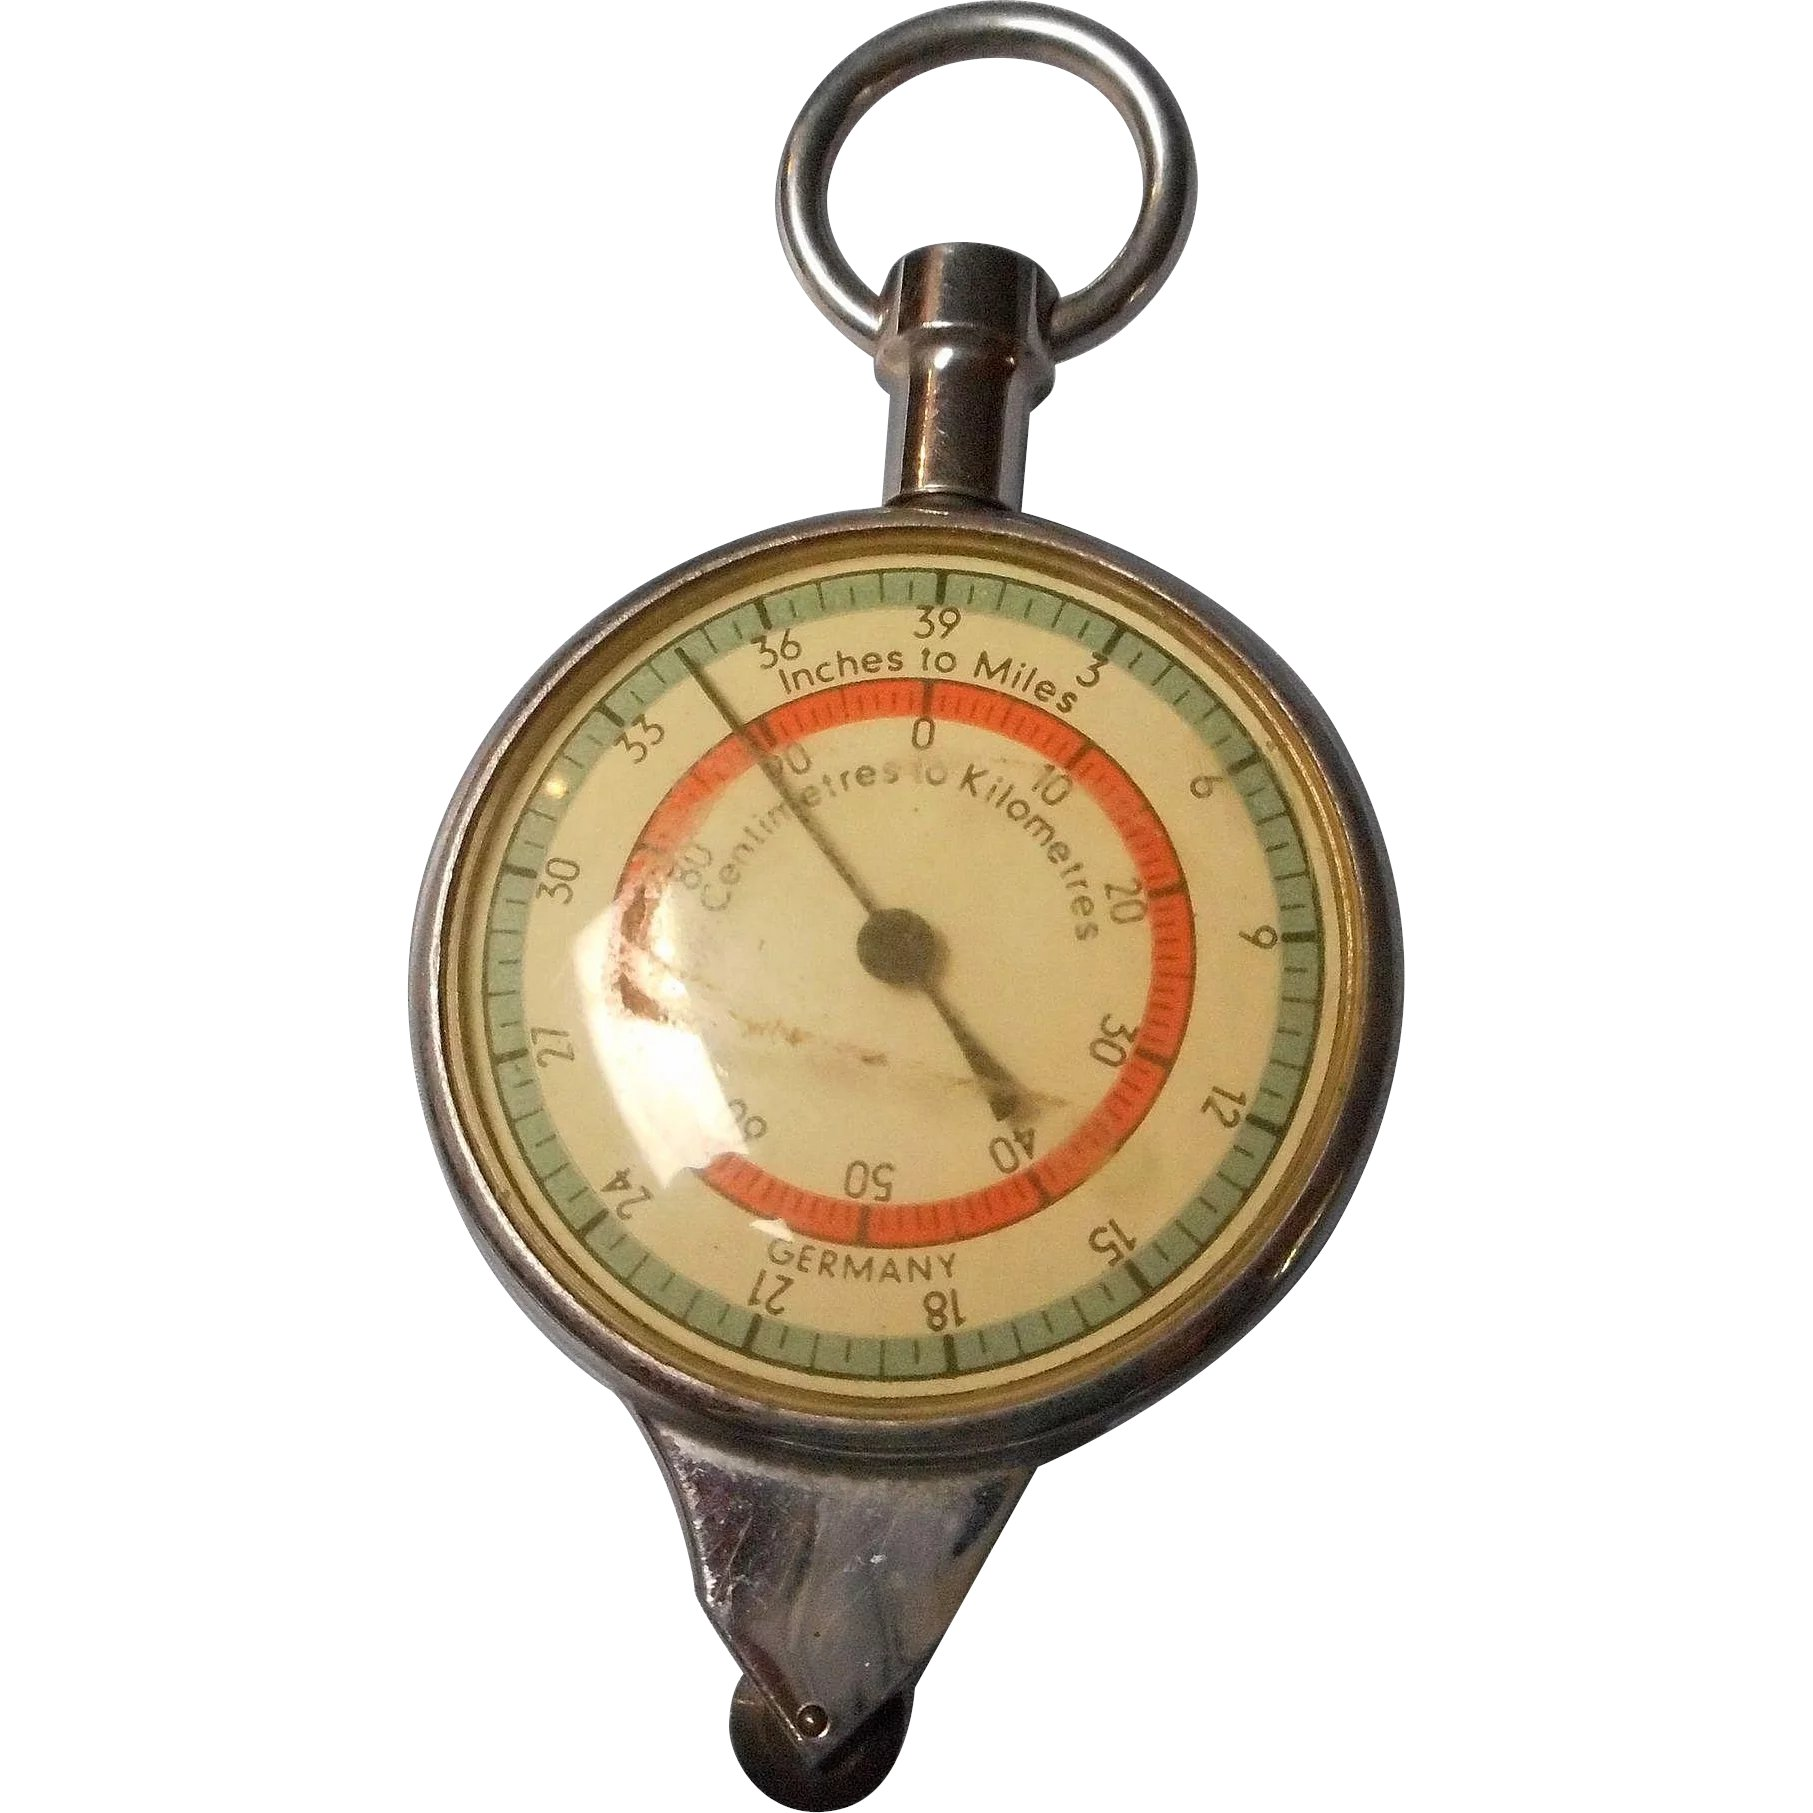 Vintage Opisometer Map Measure Tool And Compass Germany